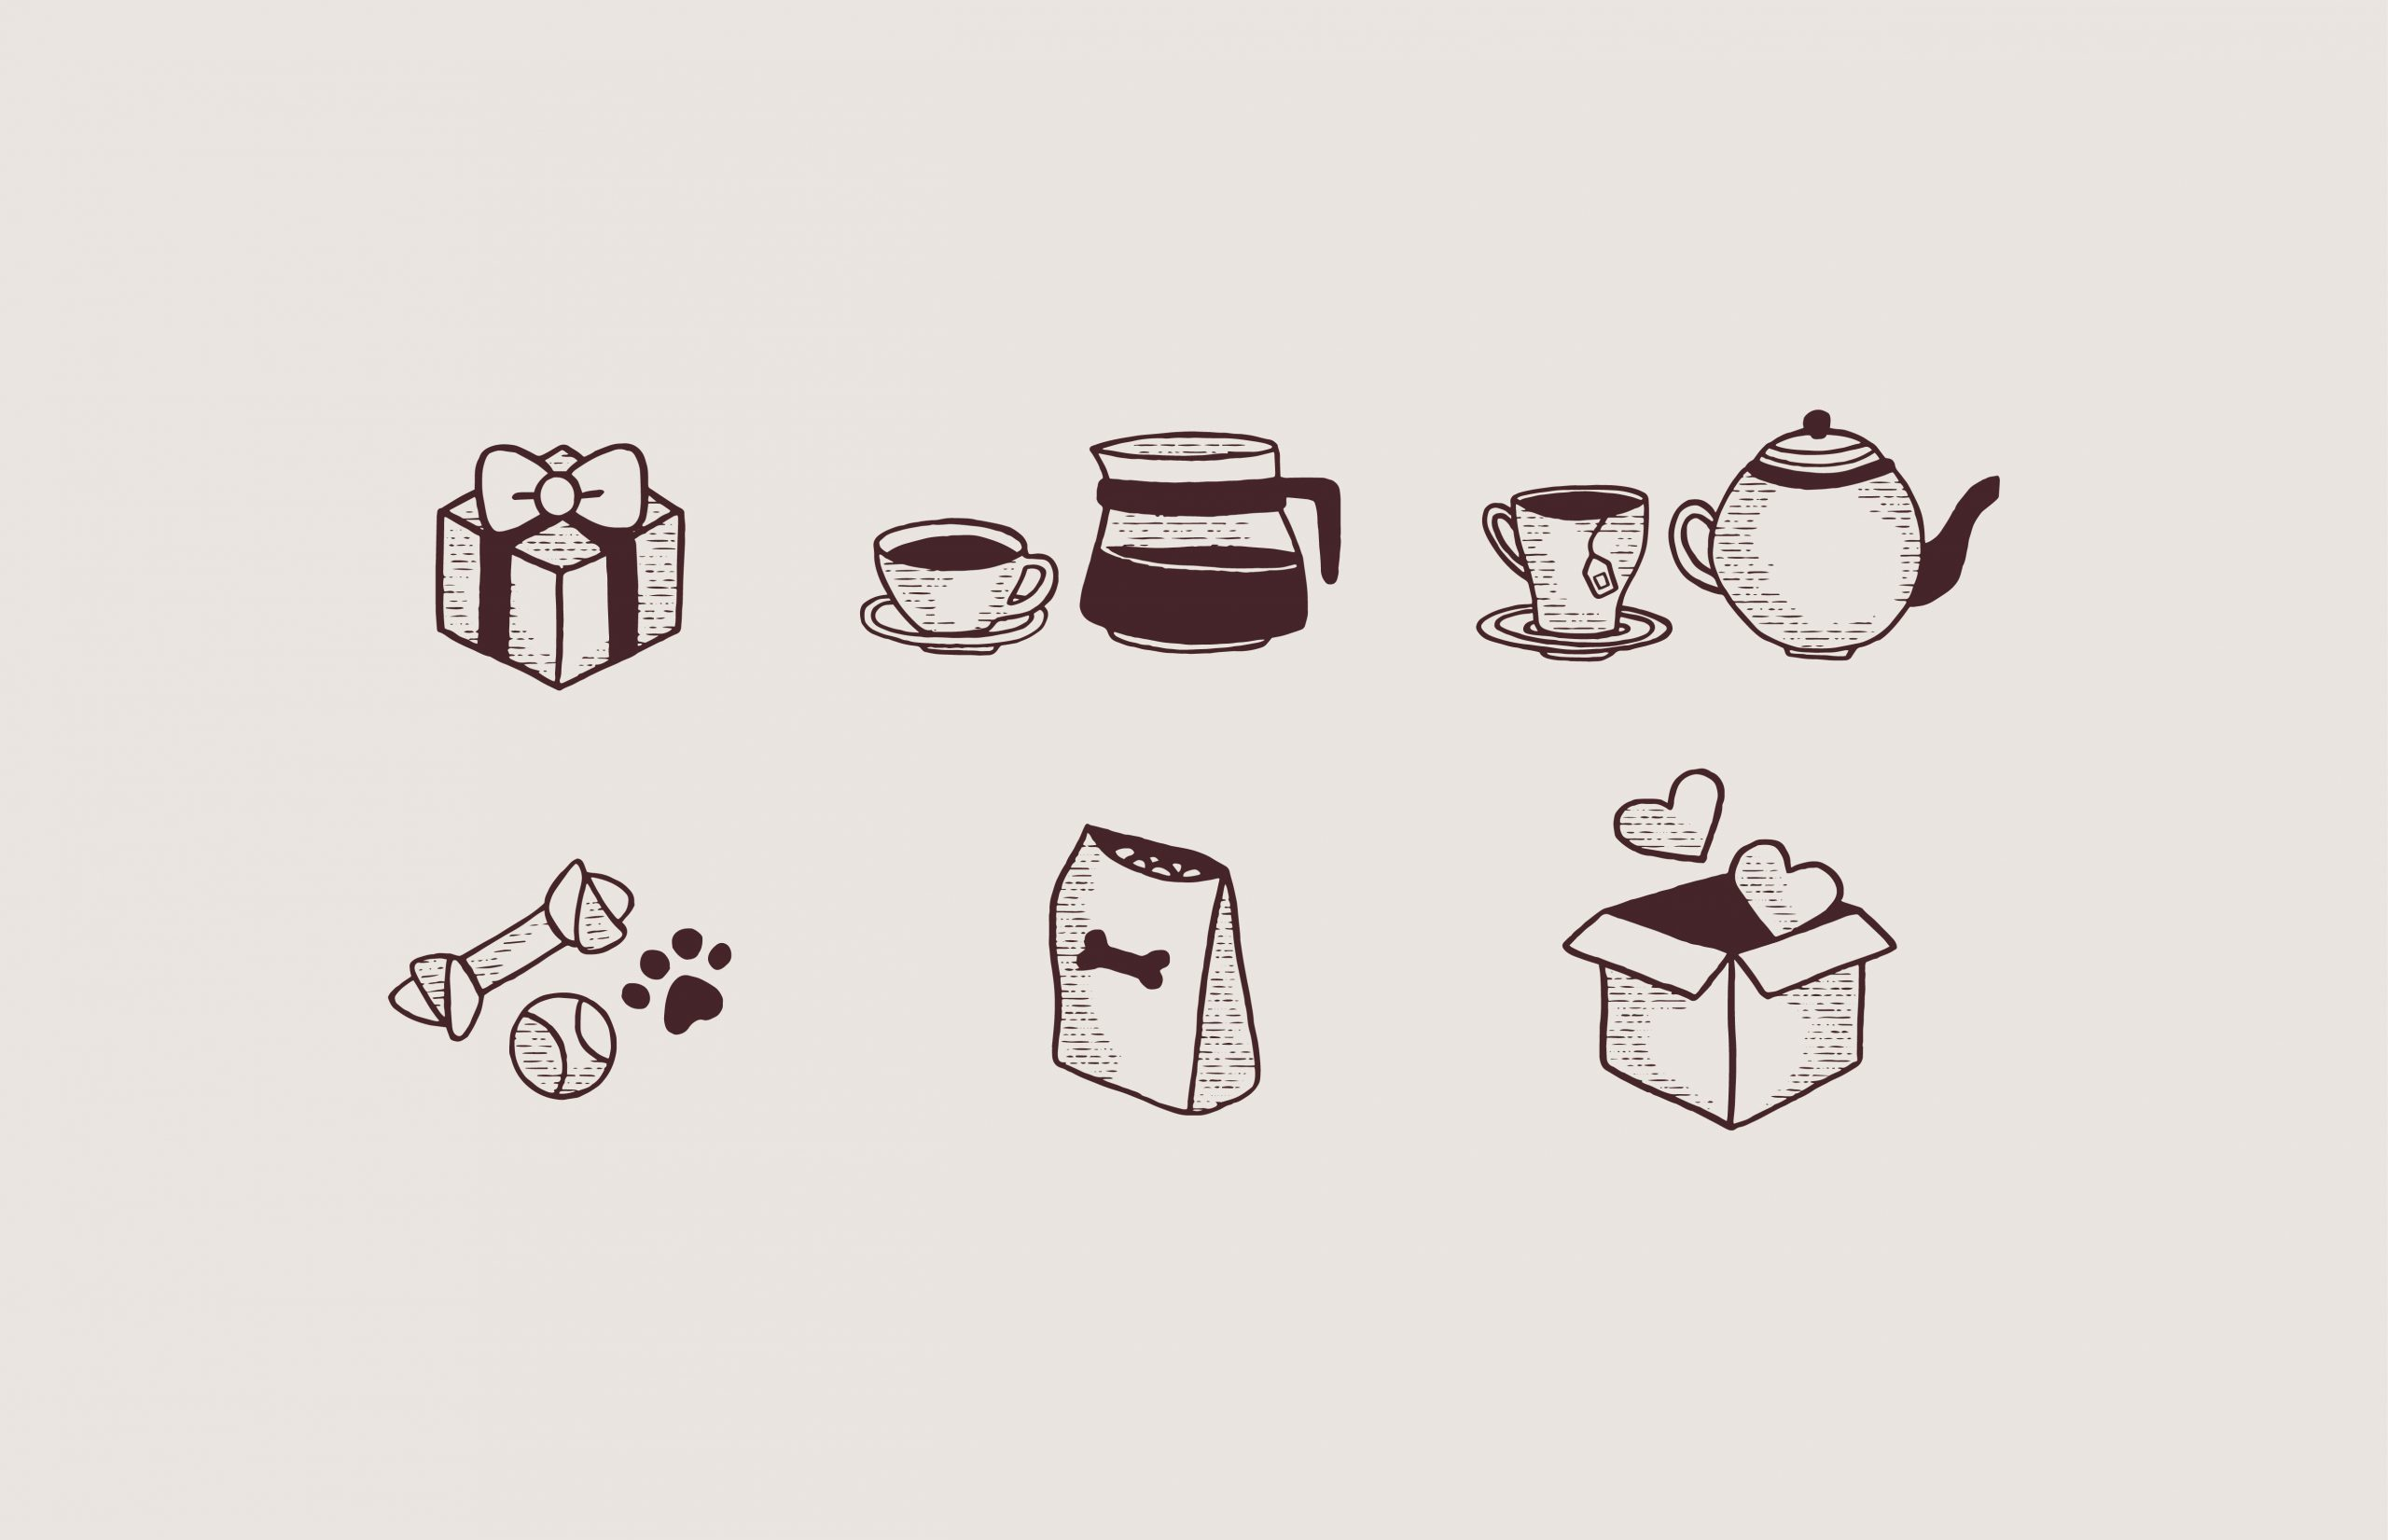 gift icon, coffee cup icon, tea cup icon, dog toys icon, dog food icon, box with heart icon